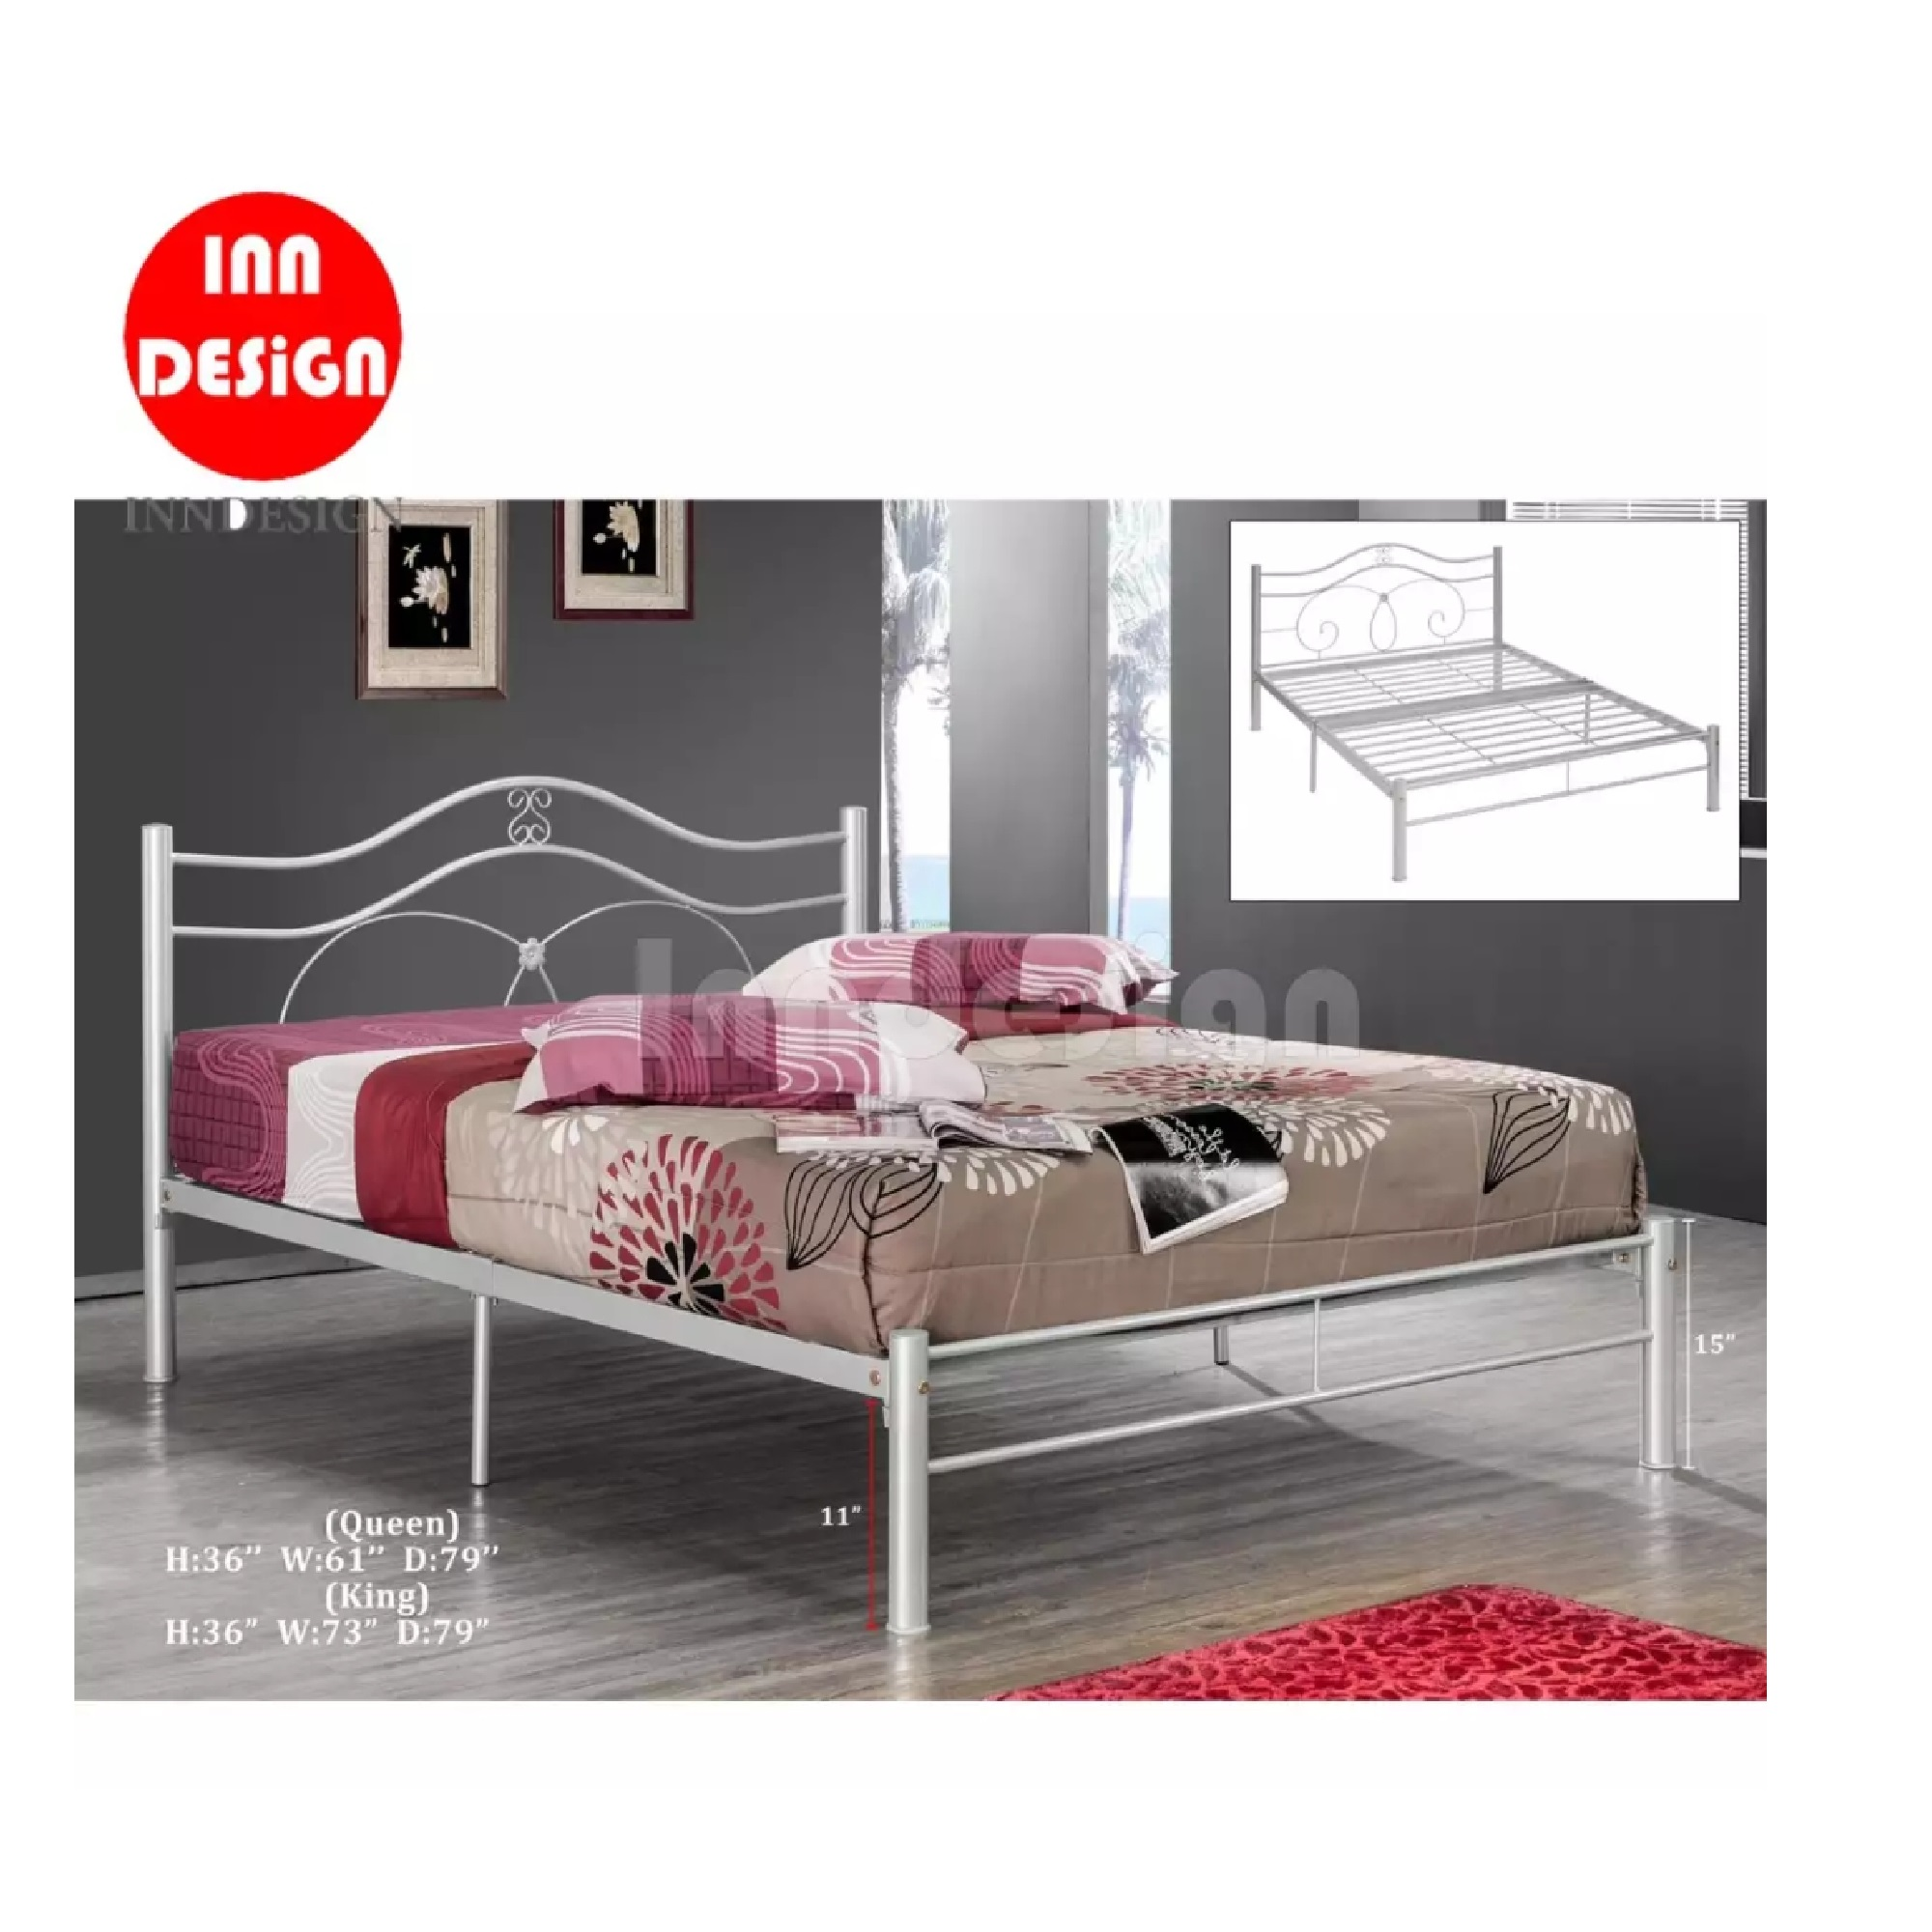 INNDESIGN Queen Metal Bed / Metal Bed Frame (Silver)